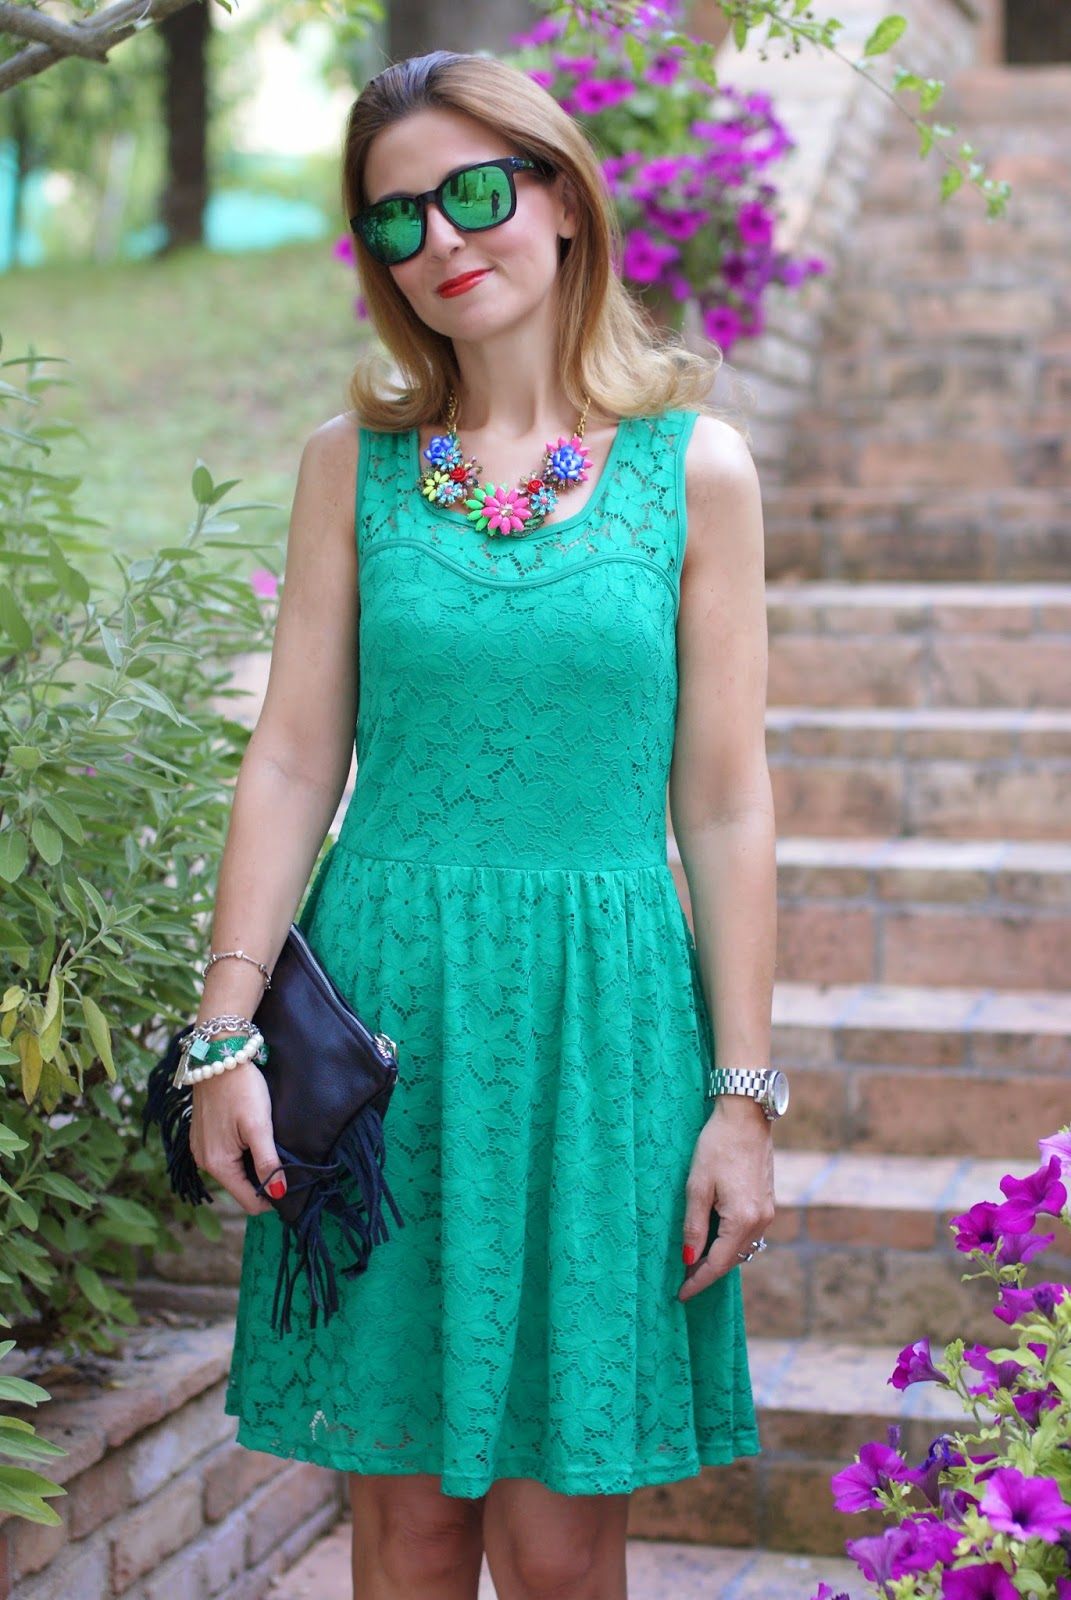 Morgan de toi lace dress, bob hat, oakley green sunglasses, Fashion and Cookies, fashion blogger